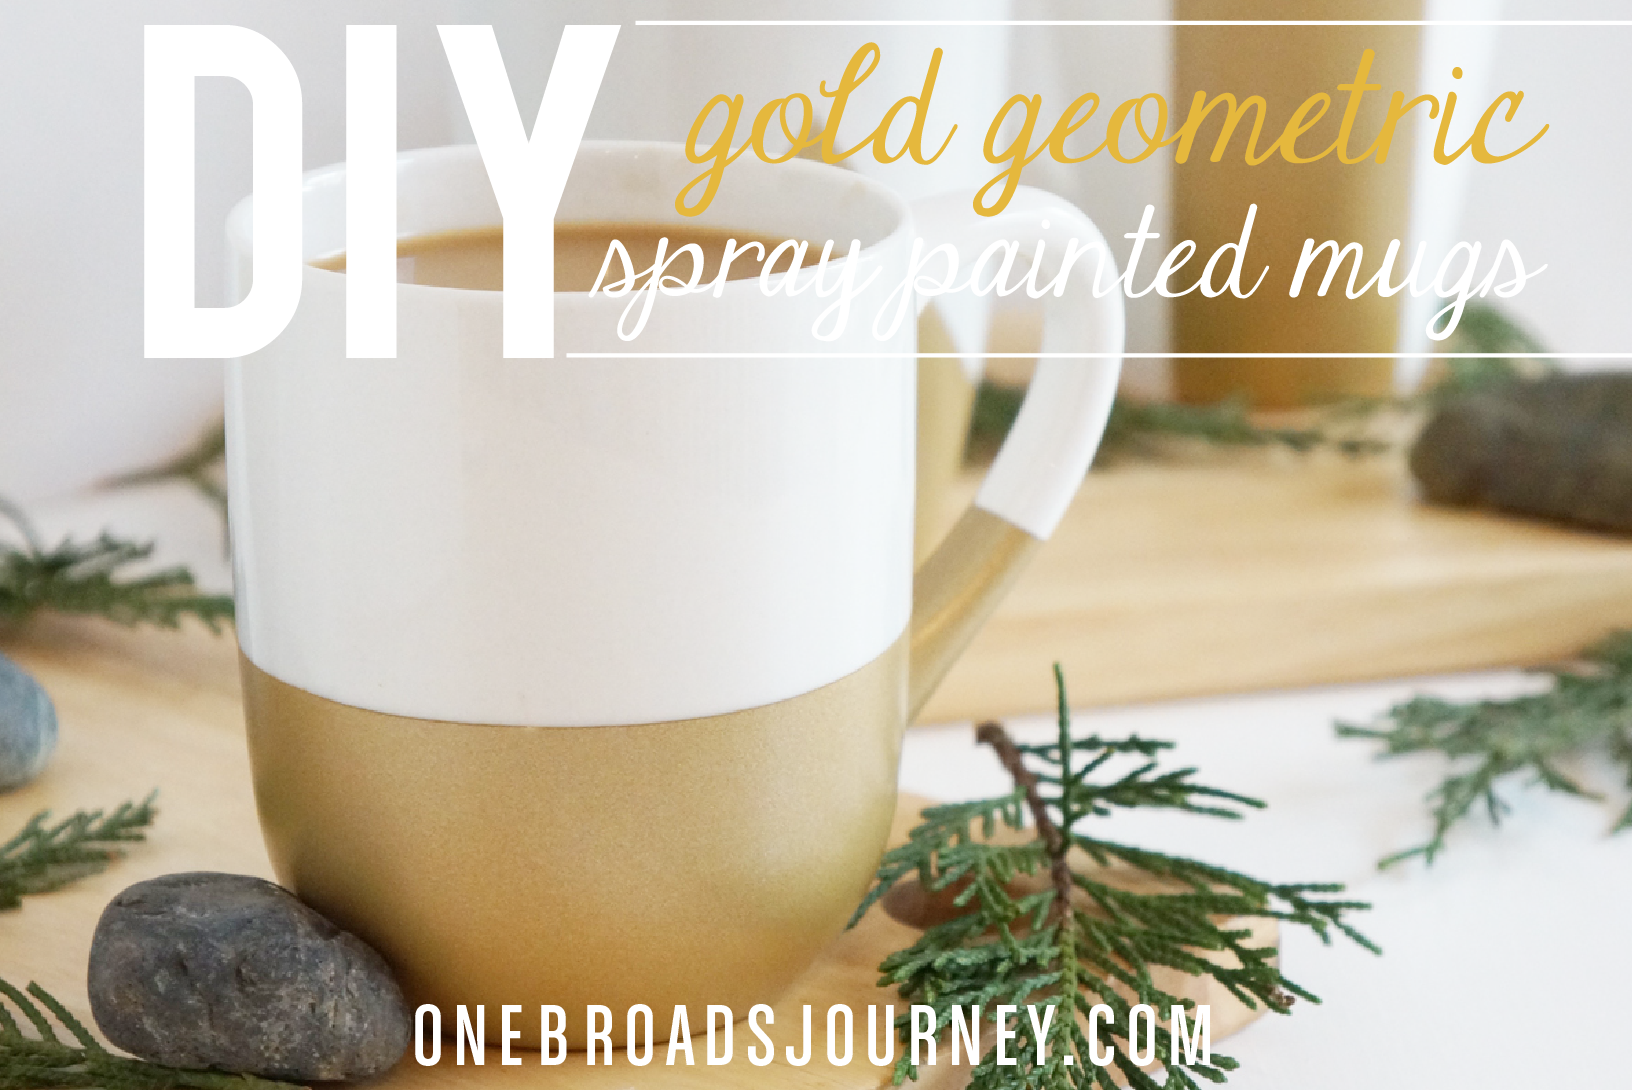 Diy Gold Geometric Spray Painted Mugs One Broads Journey